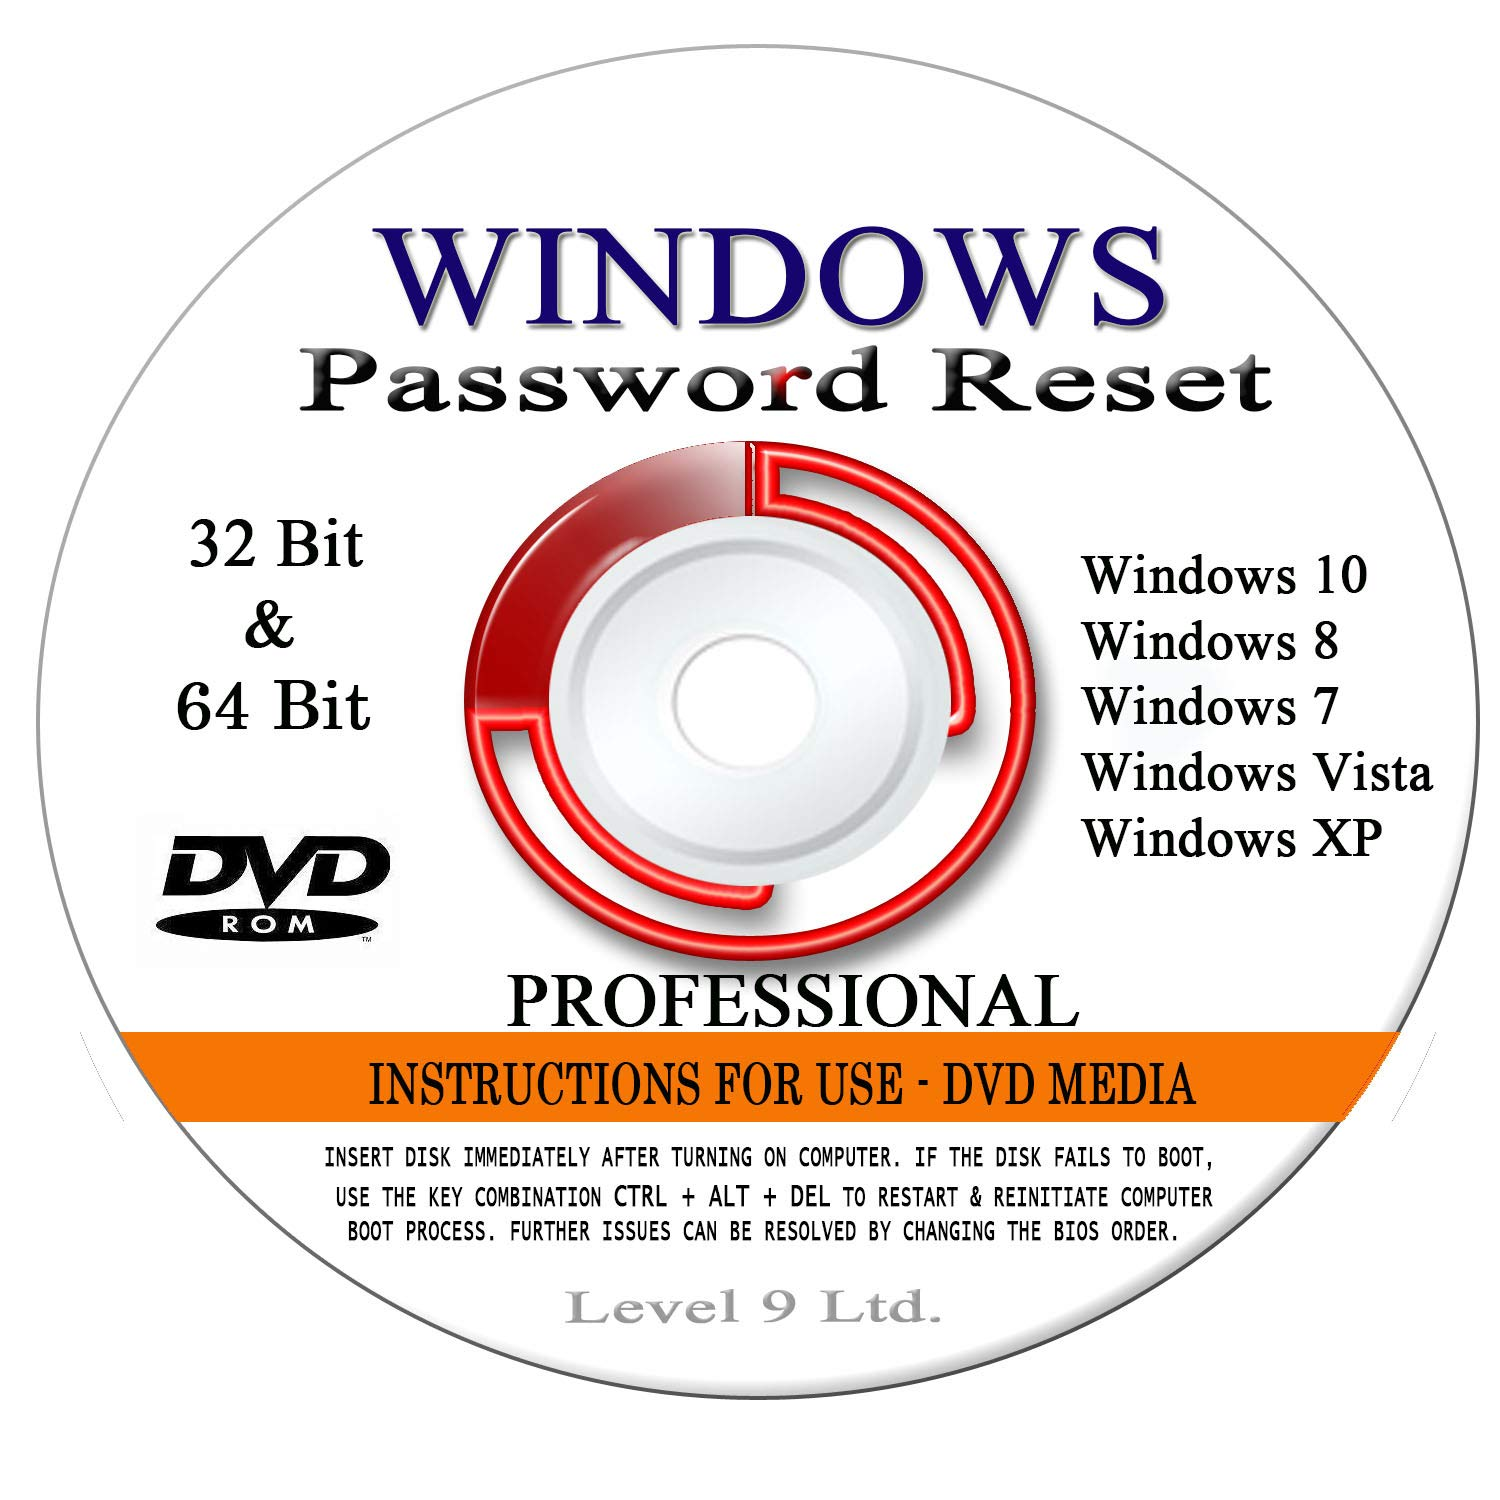 how to reset windows 7 professional password without disk